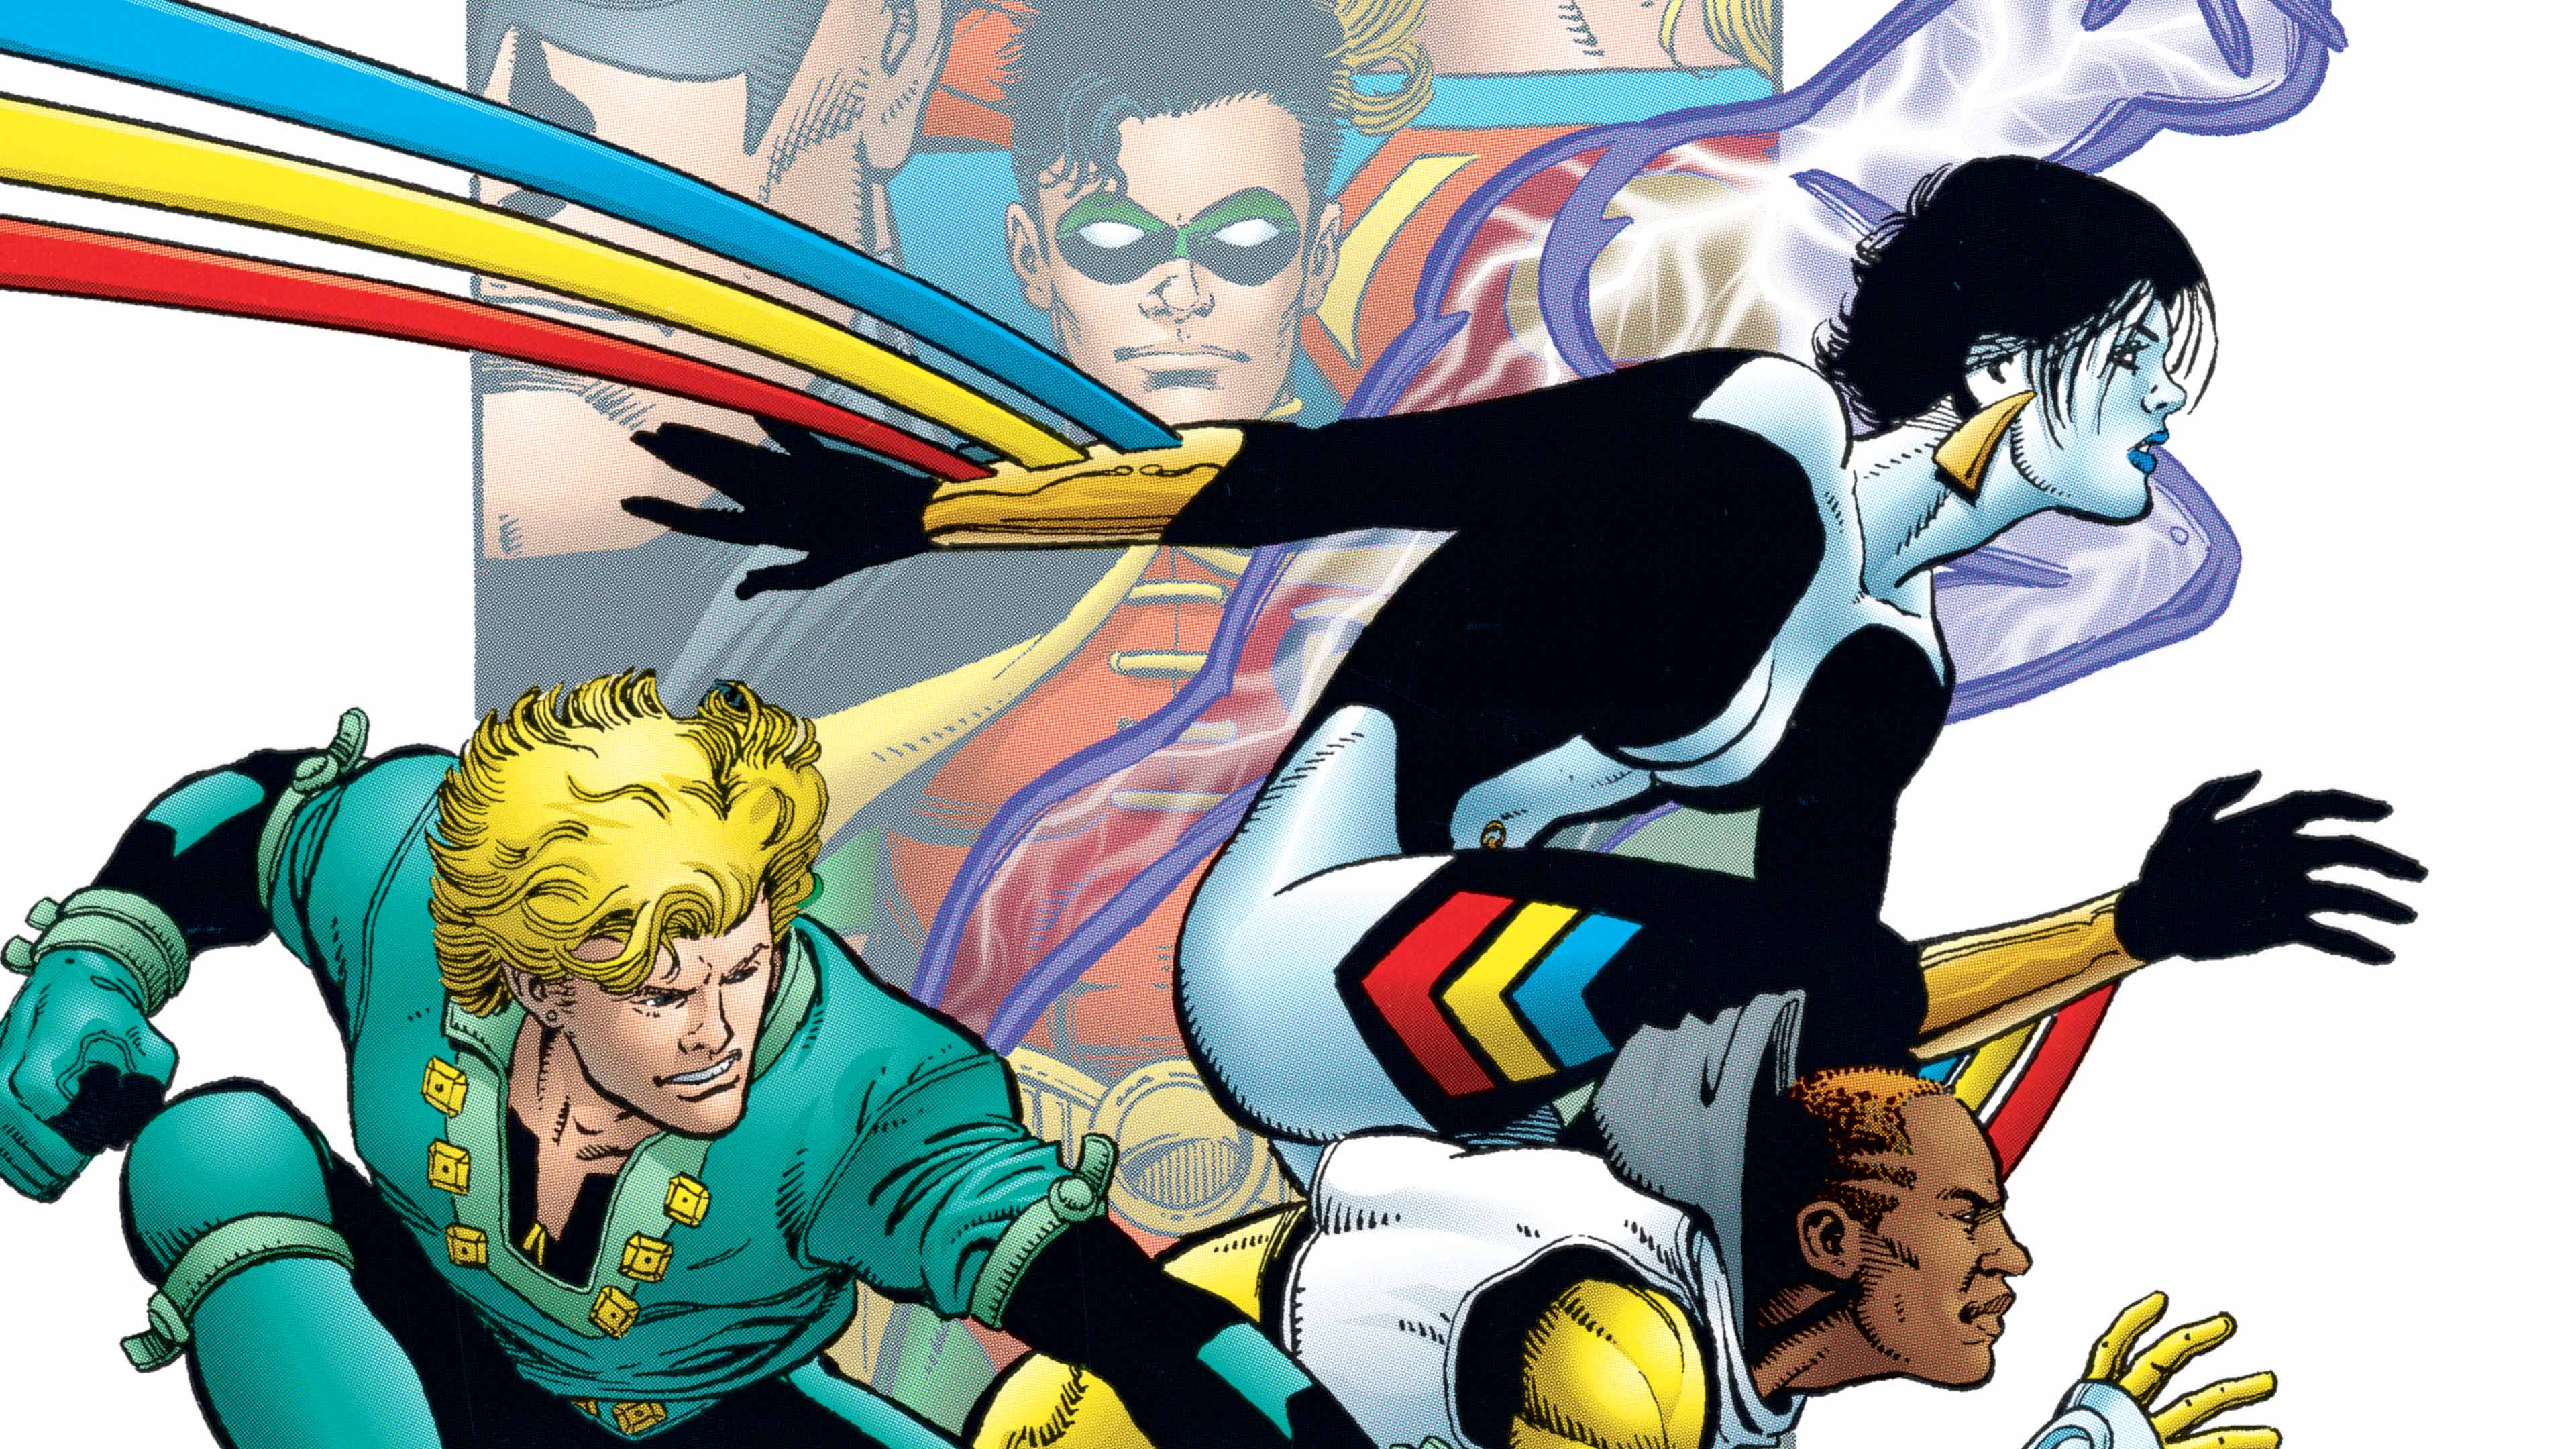 teentitans-summersolstice-news-hero-192019-v1.jpg